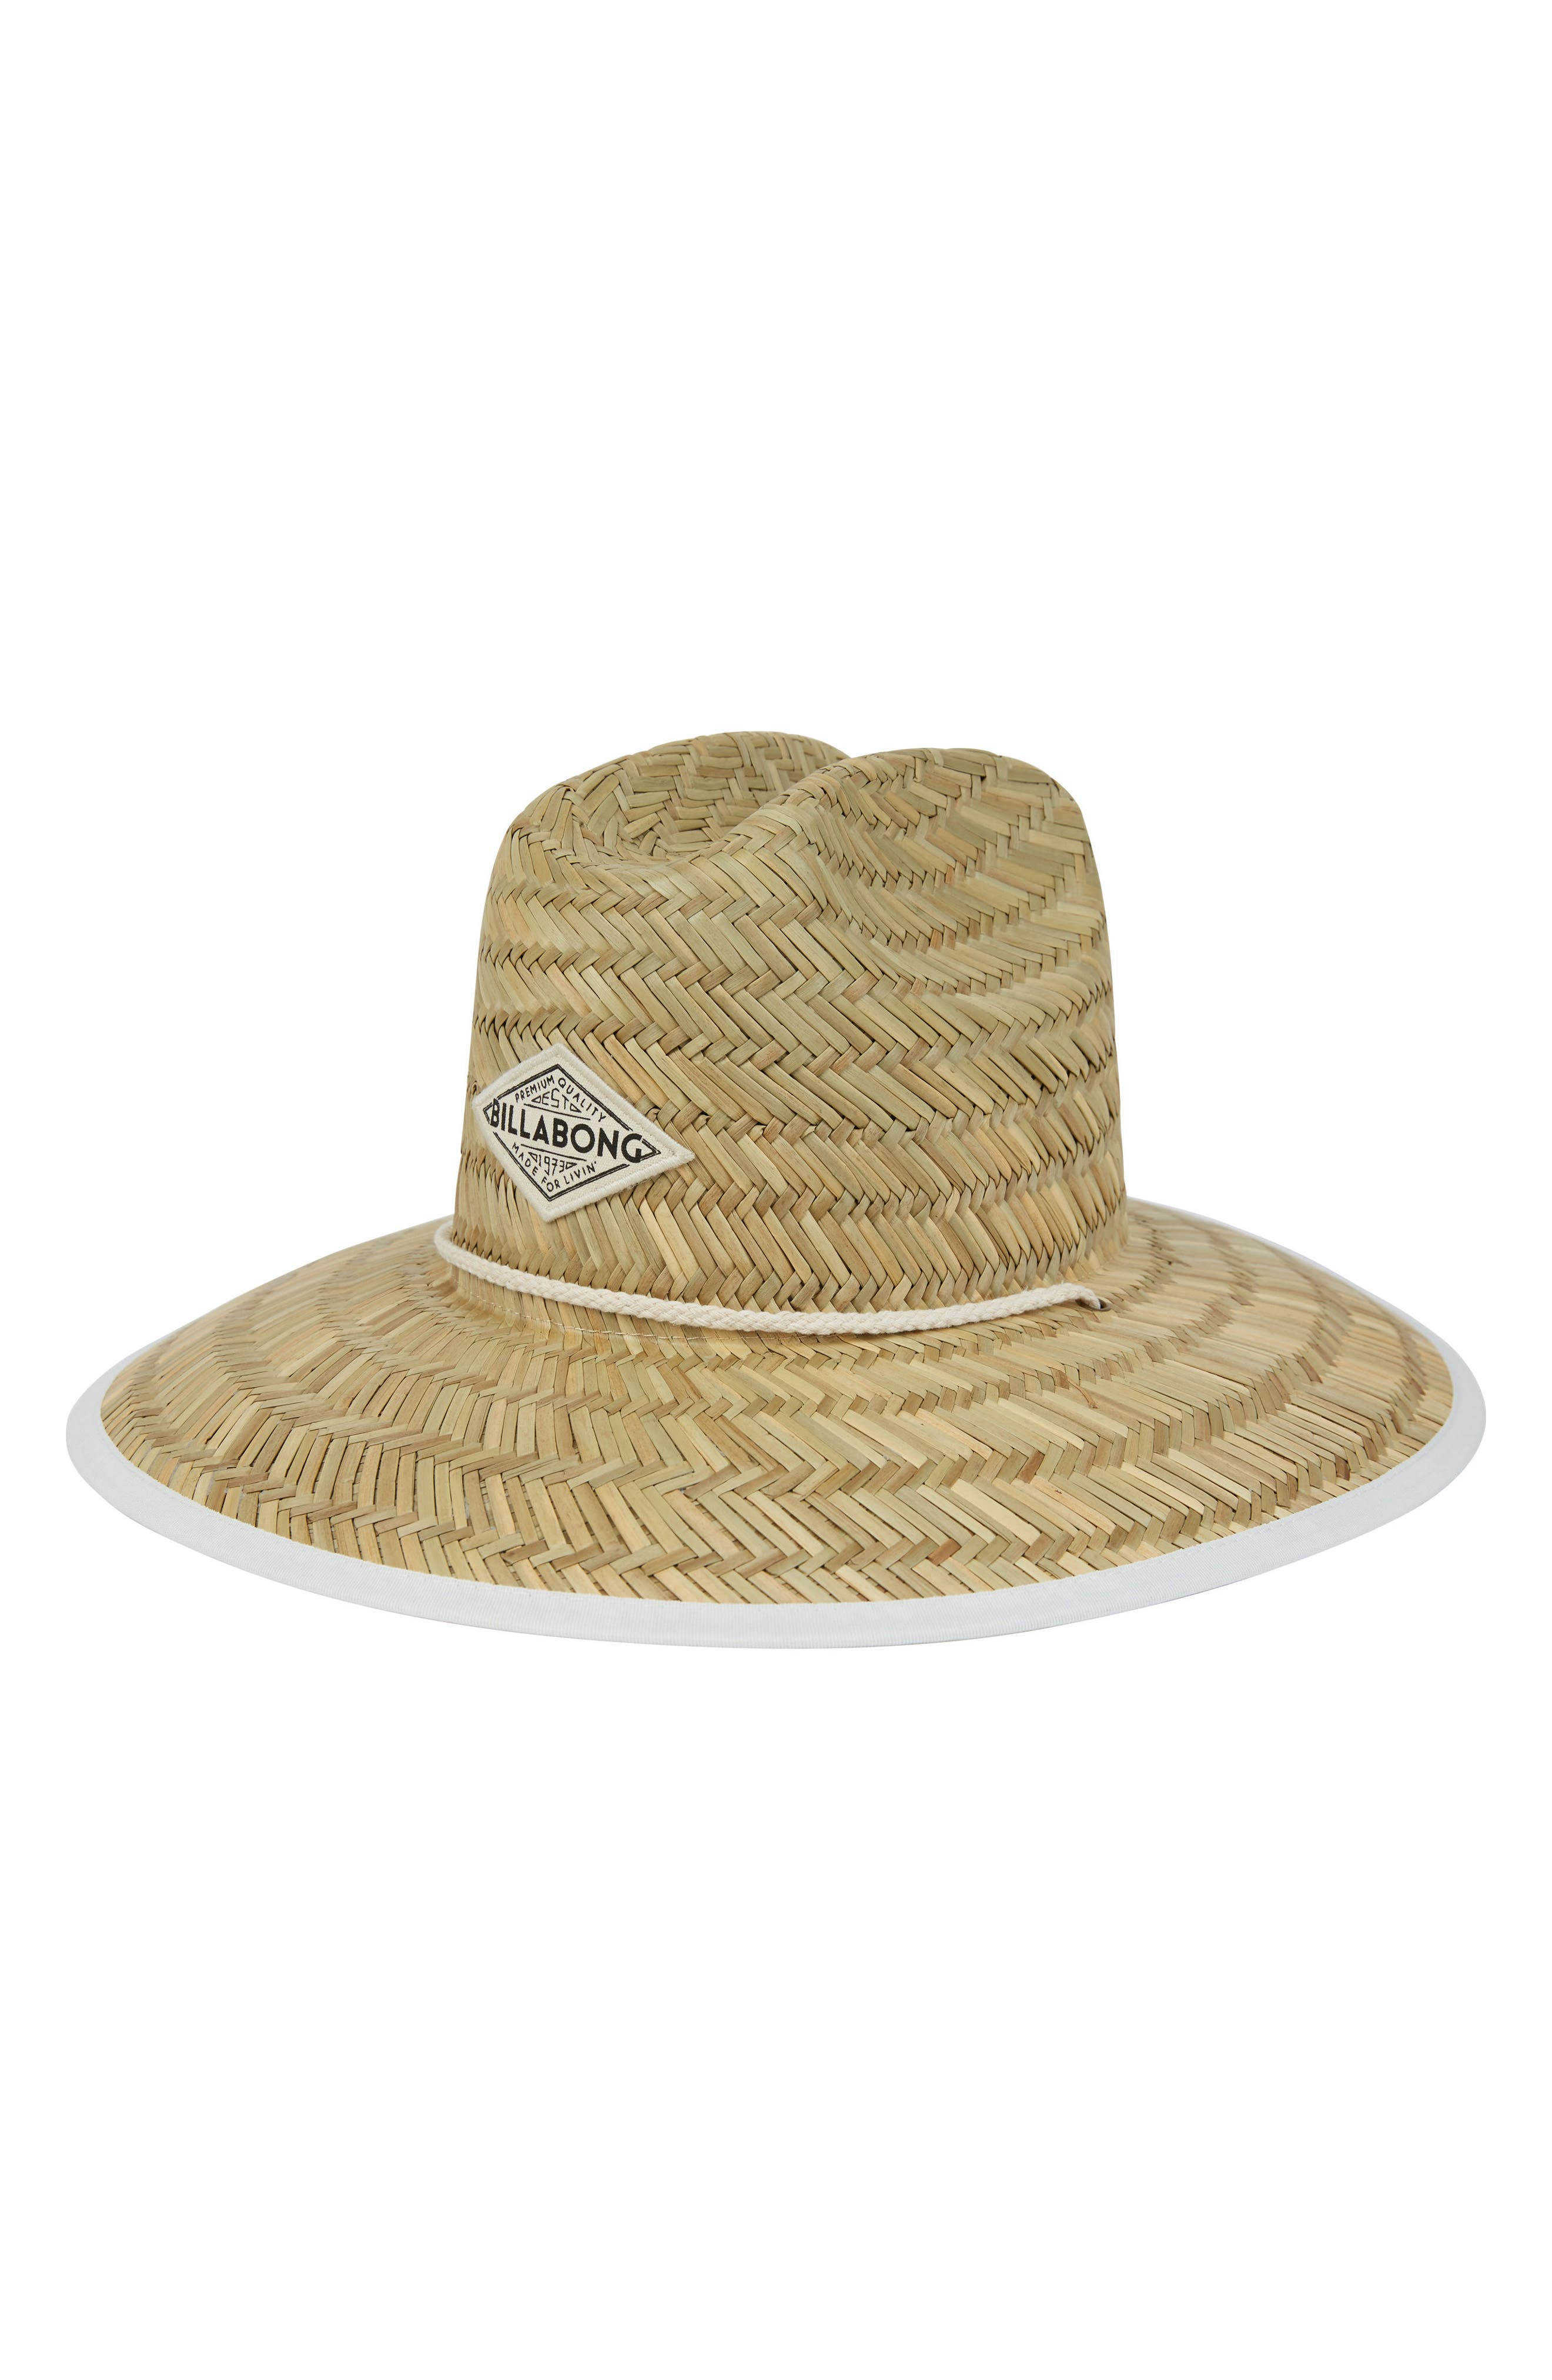 Billabong Tipton Straw Hat